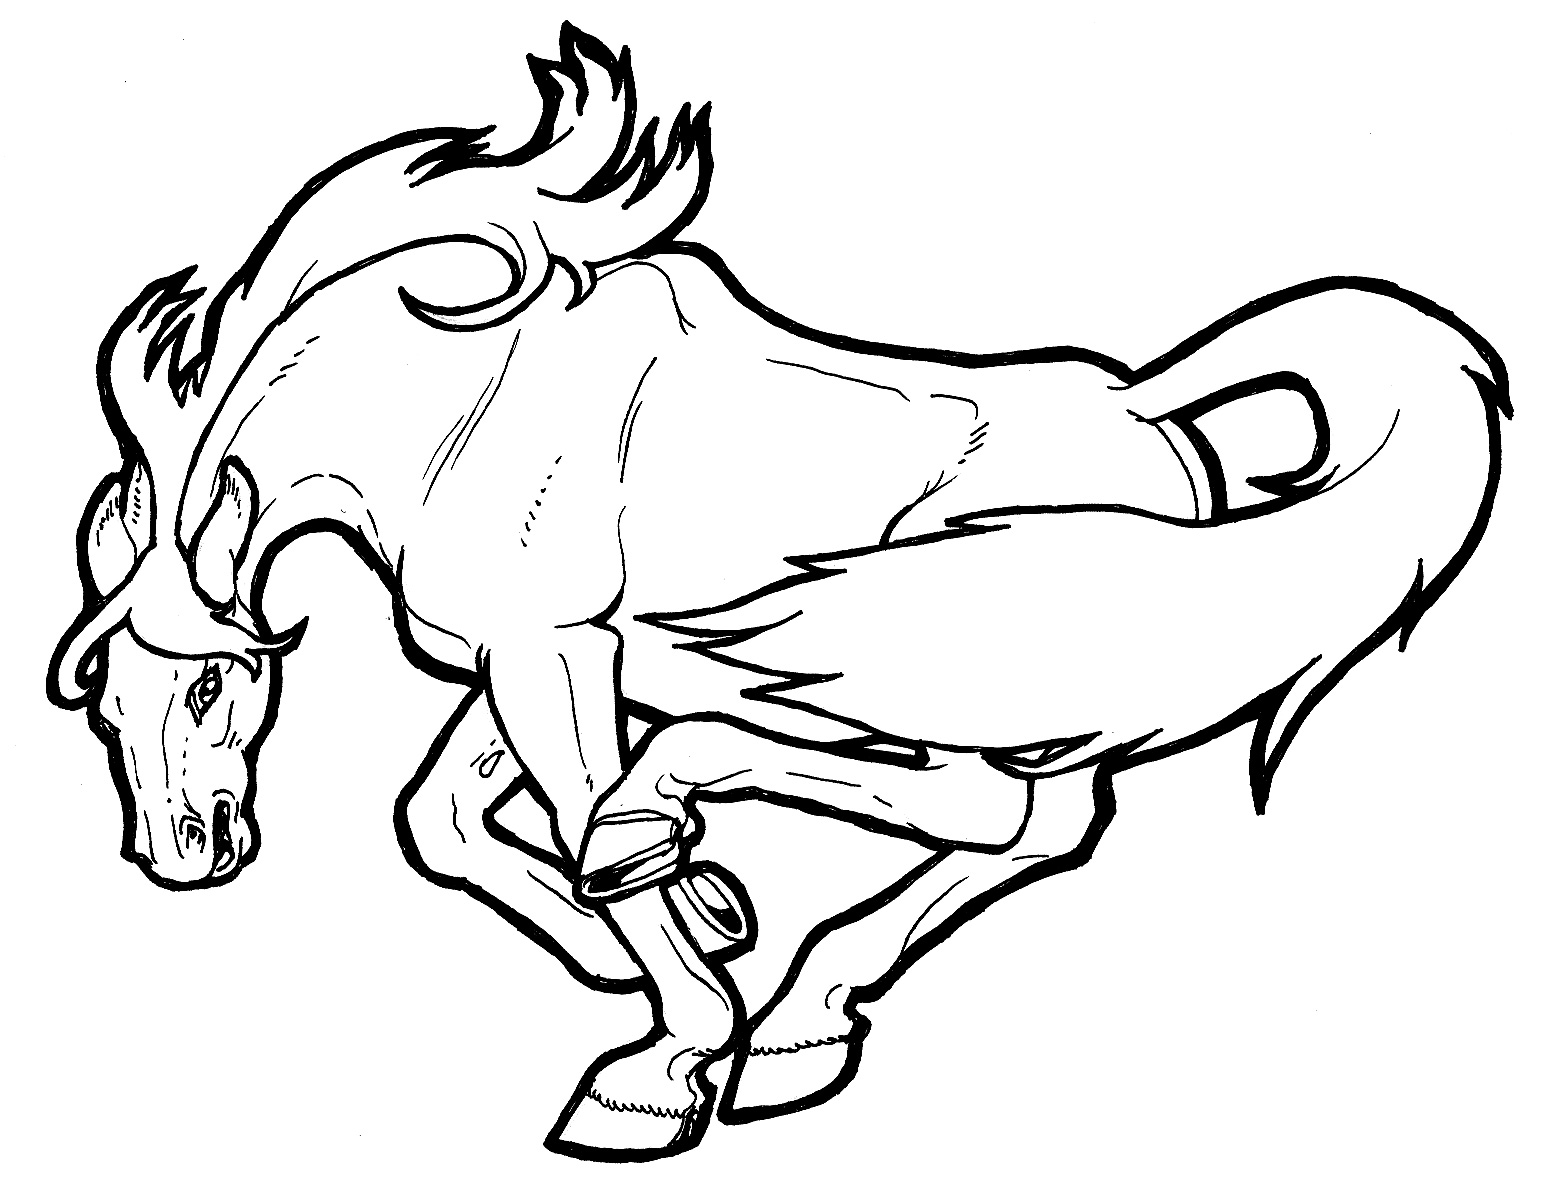 coloring images horse fun horse coloring pages for your kids printable images coloring horse